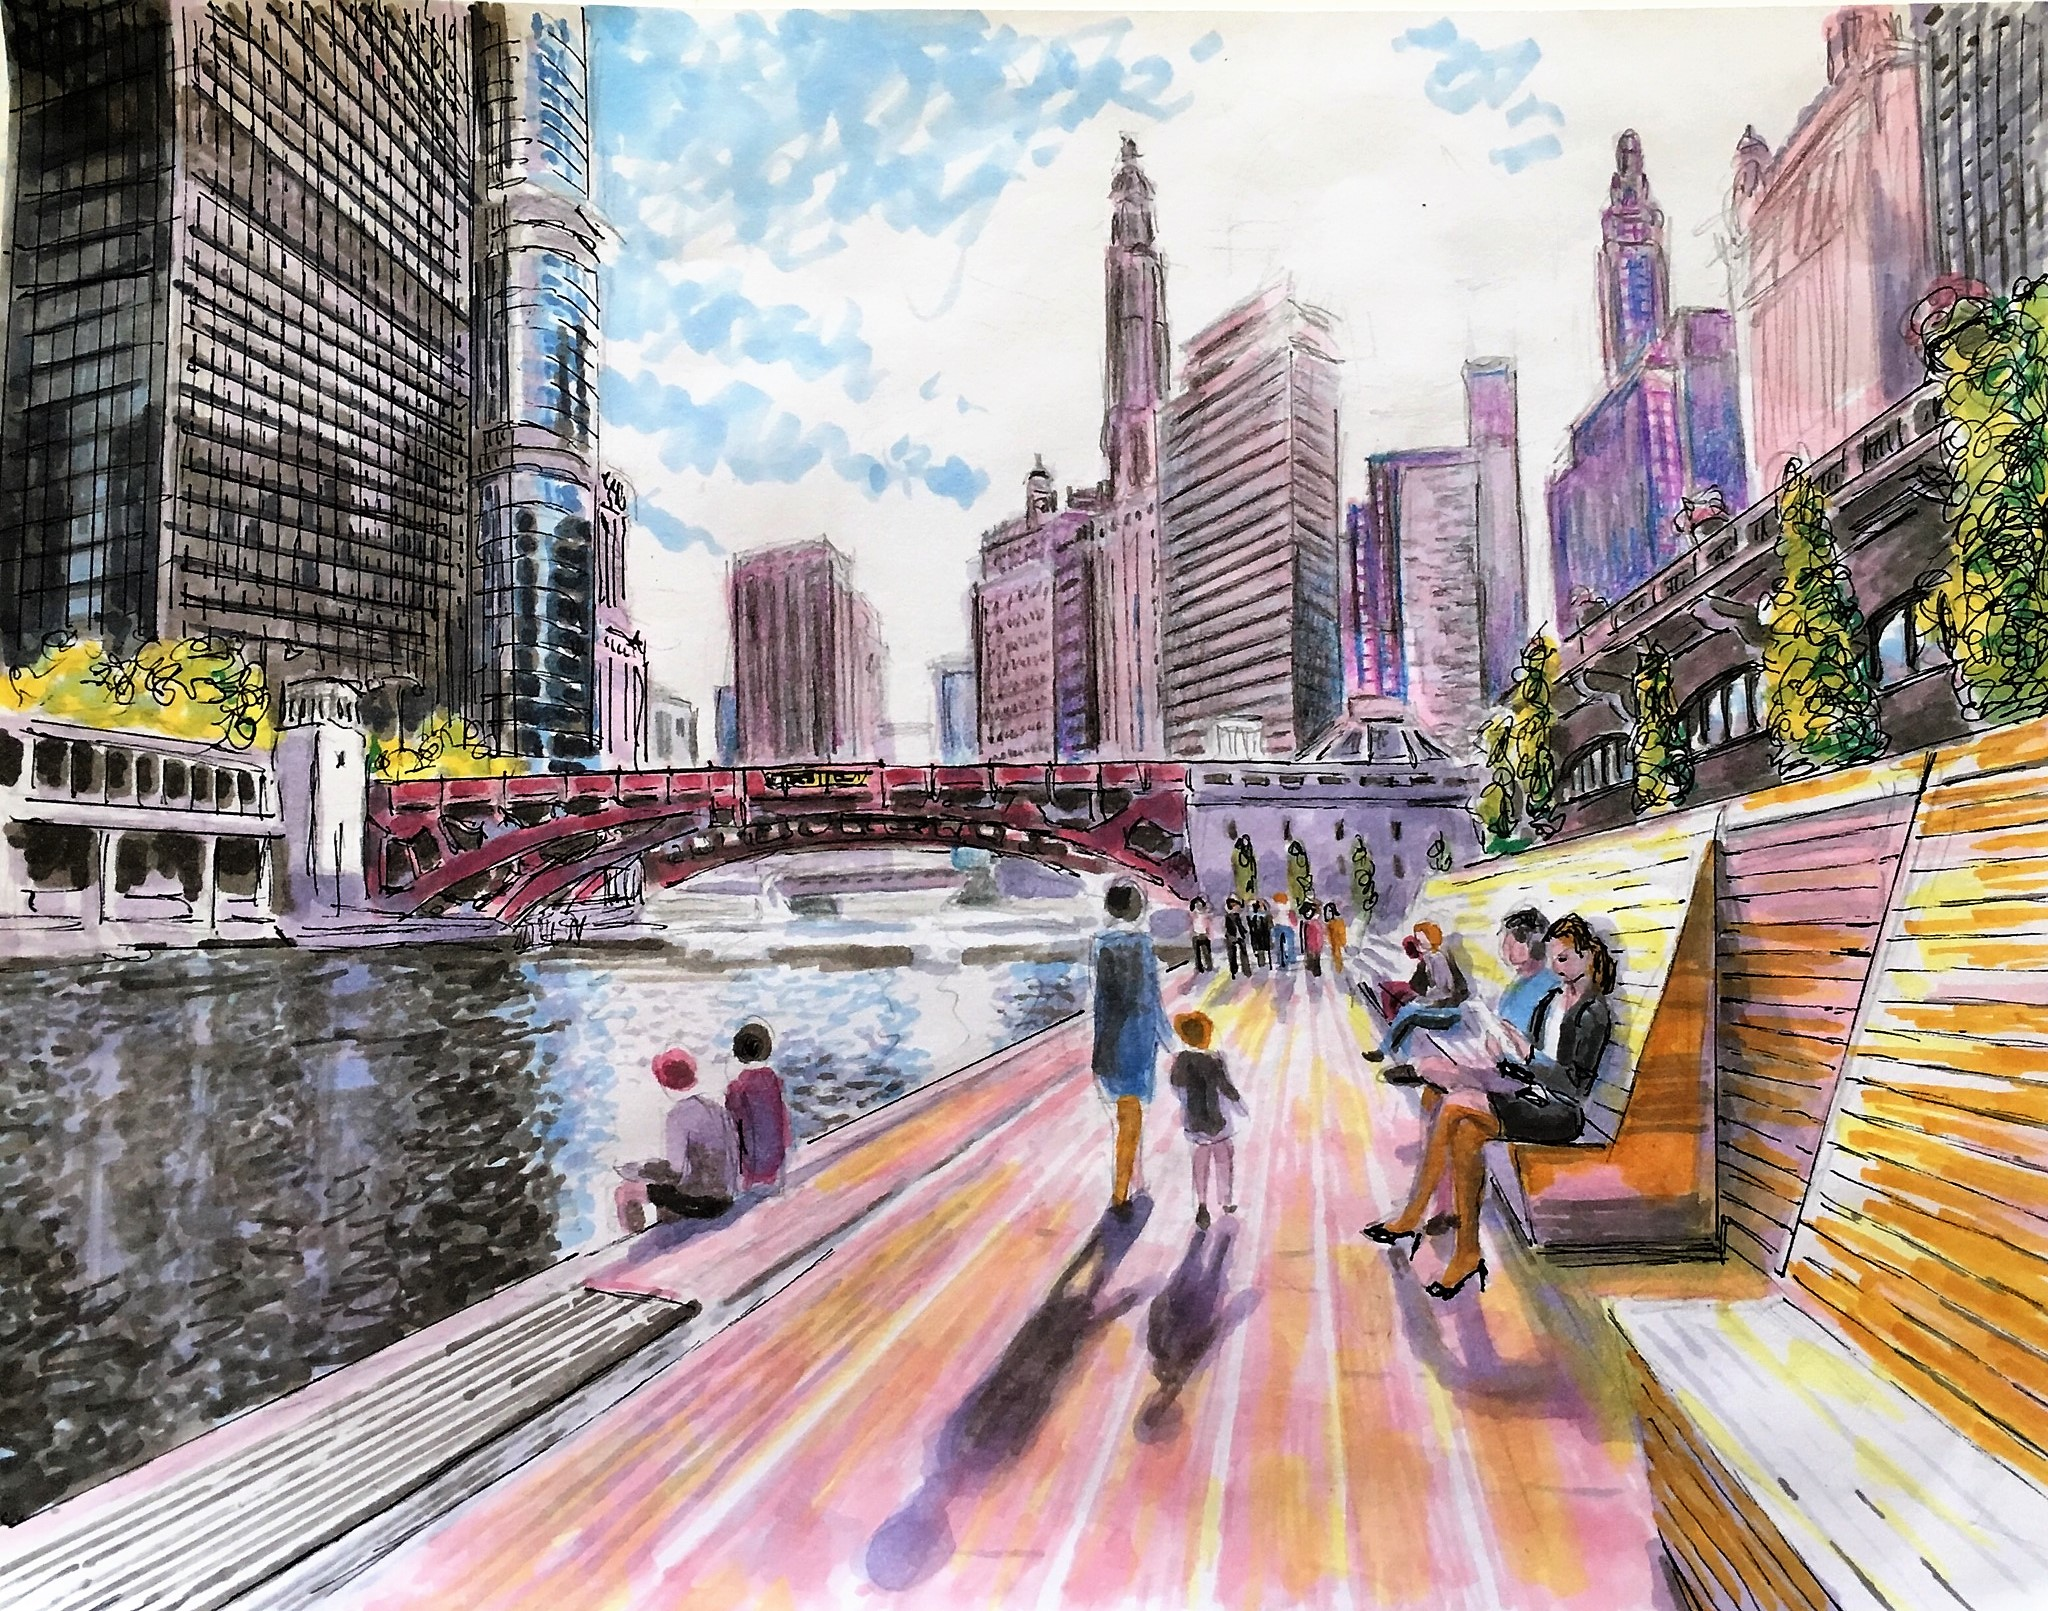 Riverwalk, Chicago